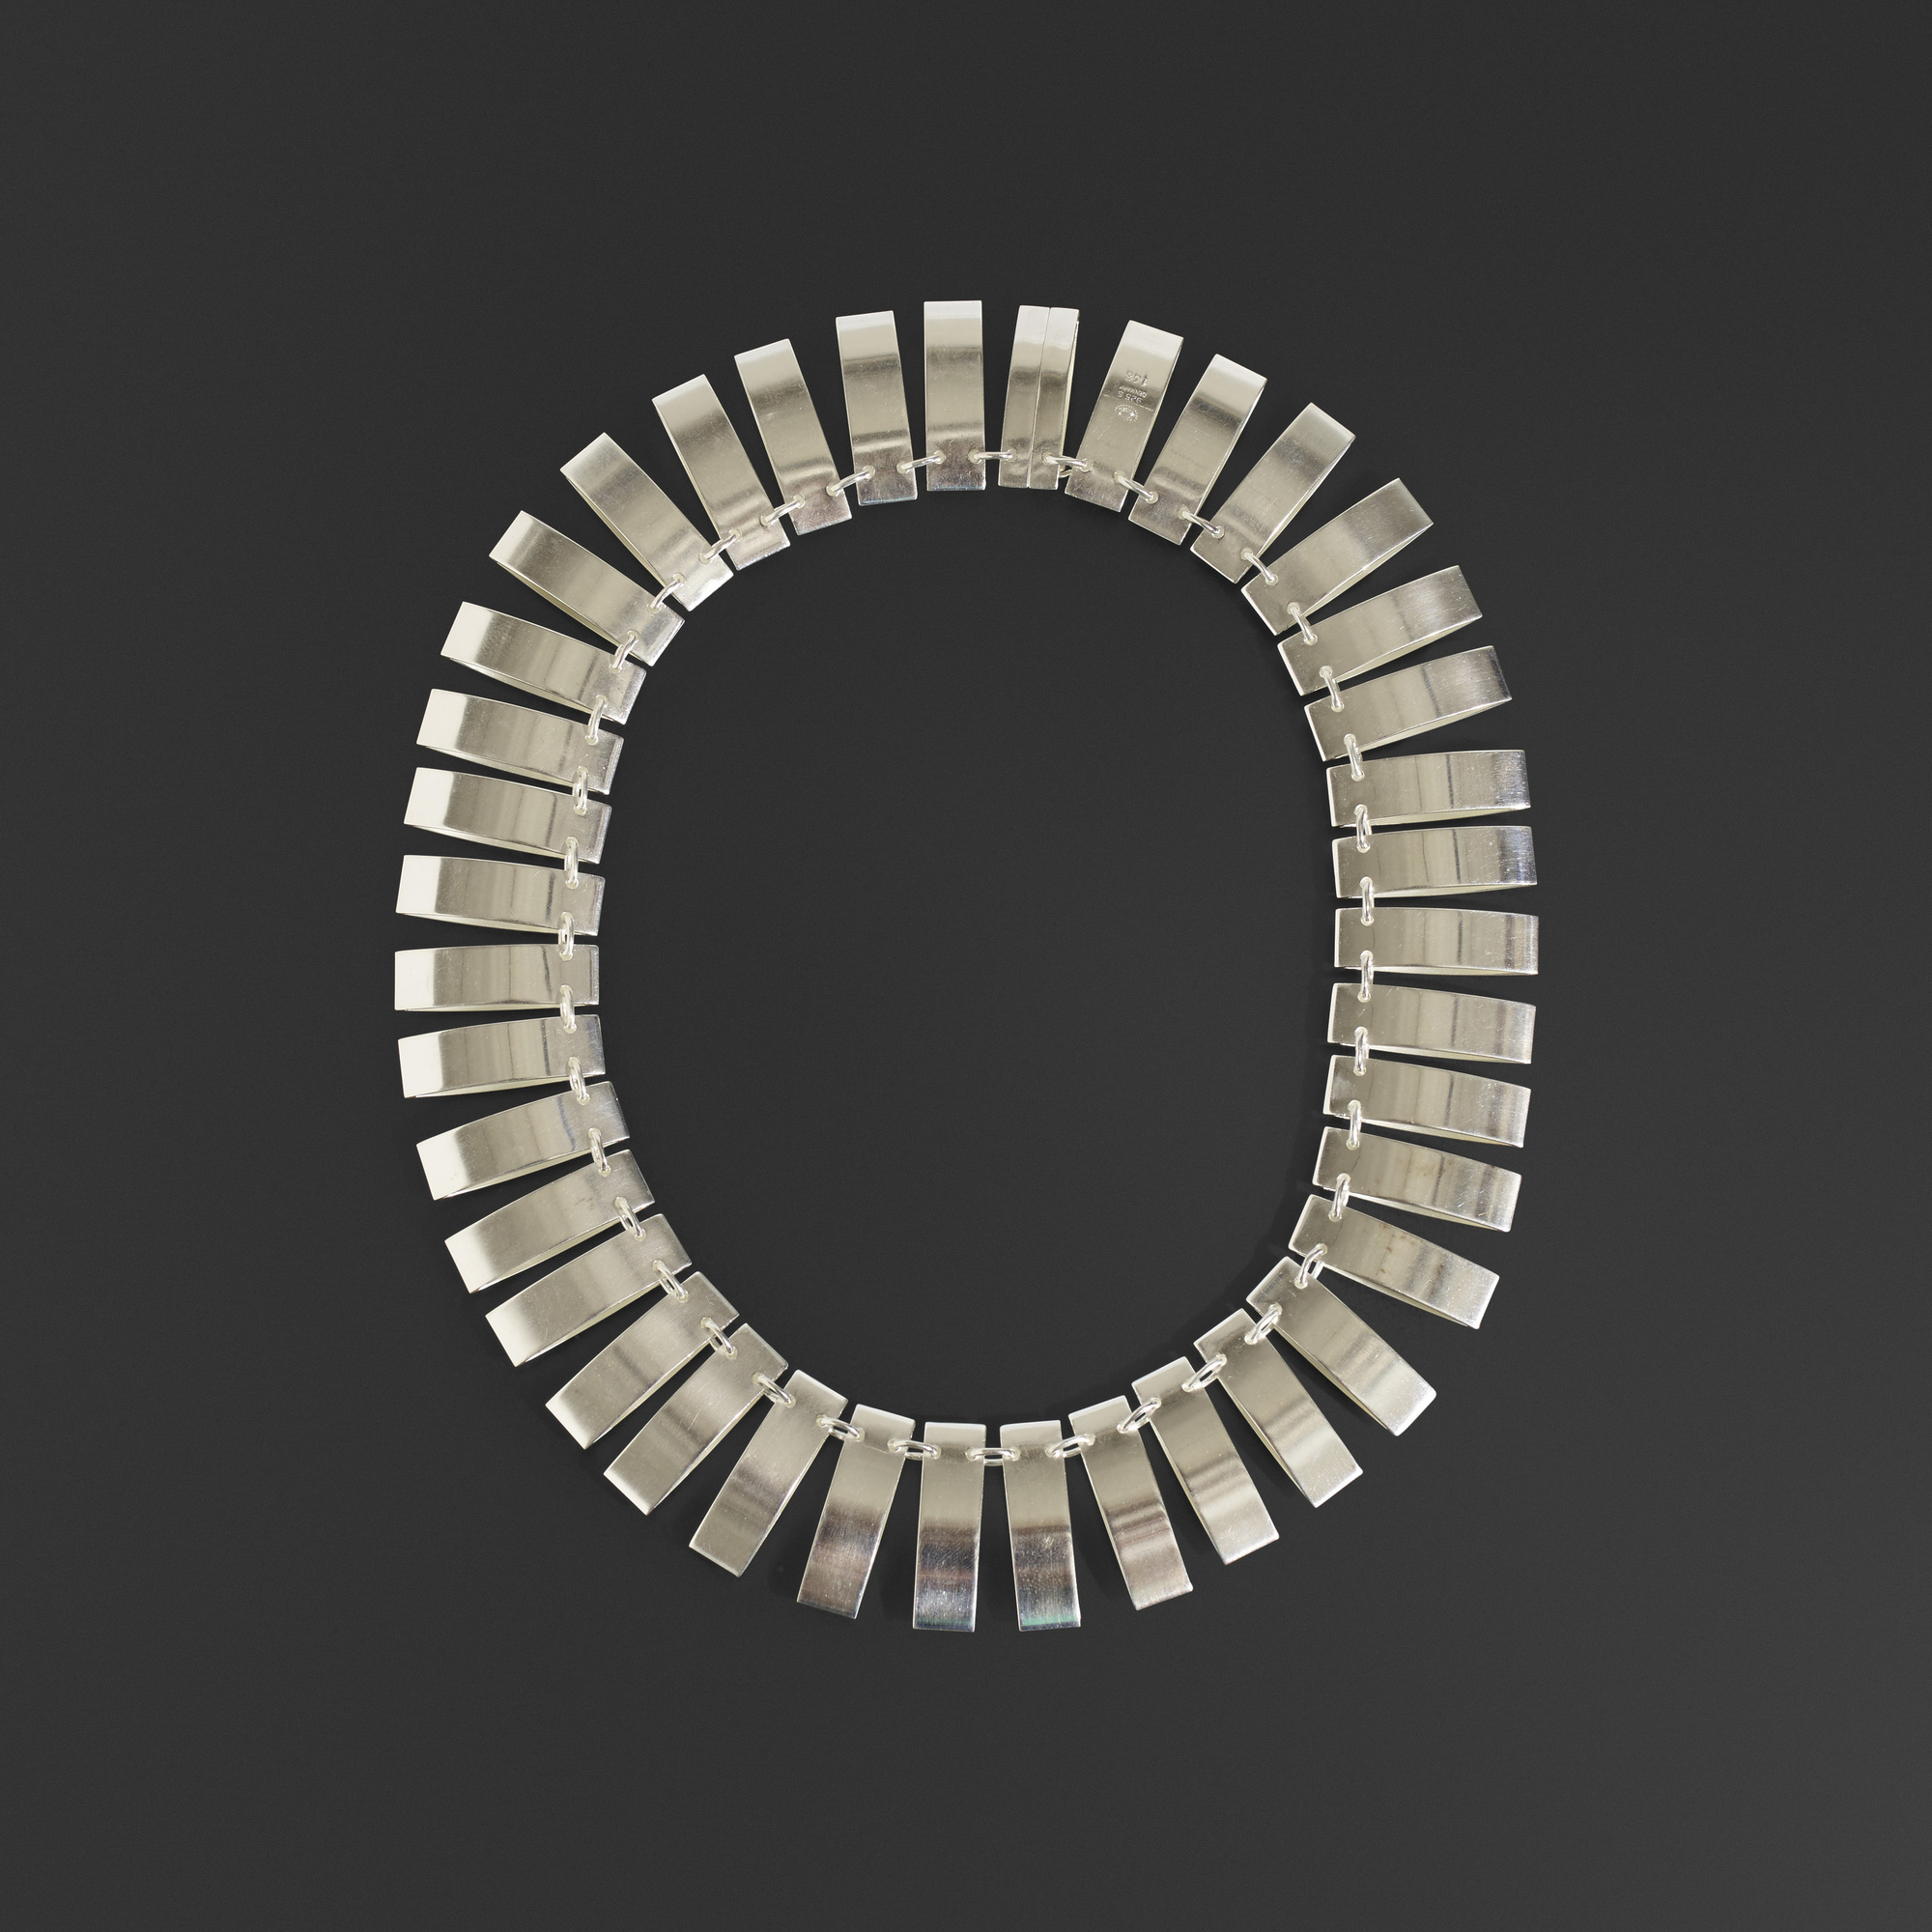 176: Arno Malinowski / necklace, model 136 (1 of 3)